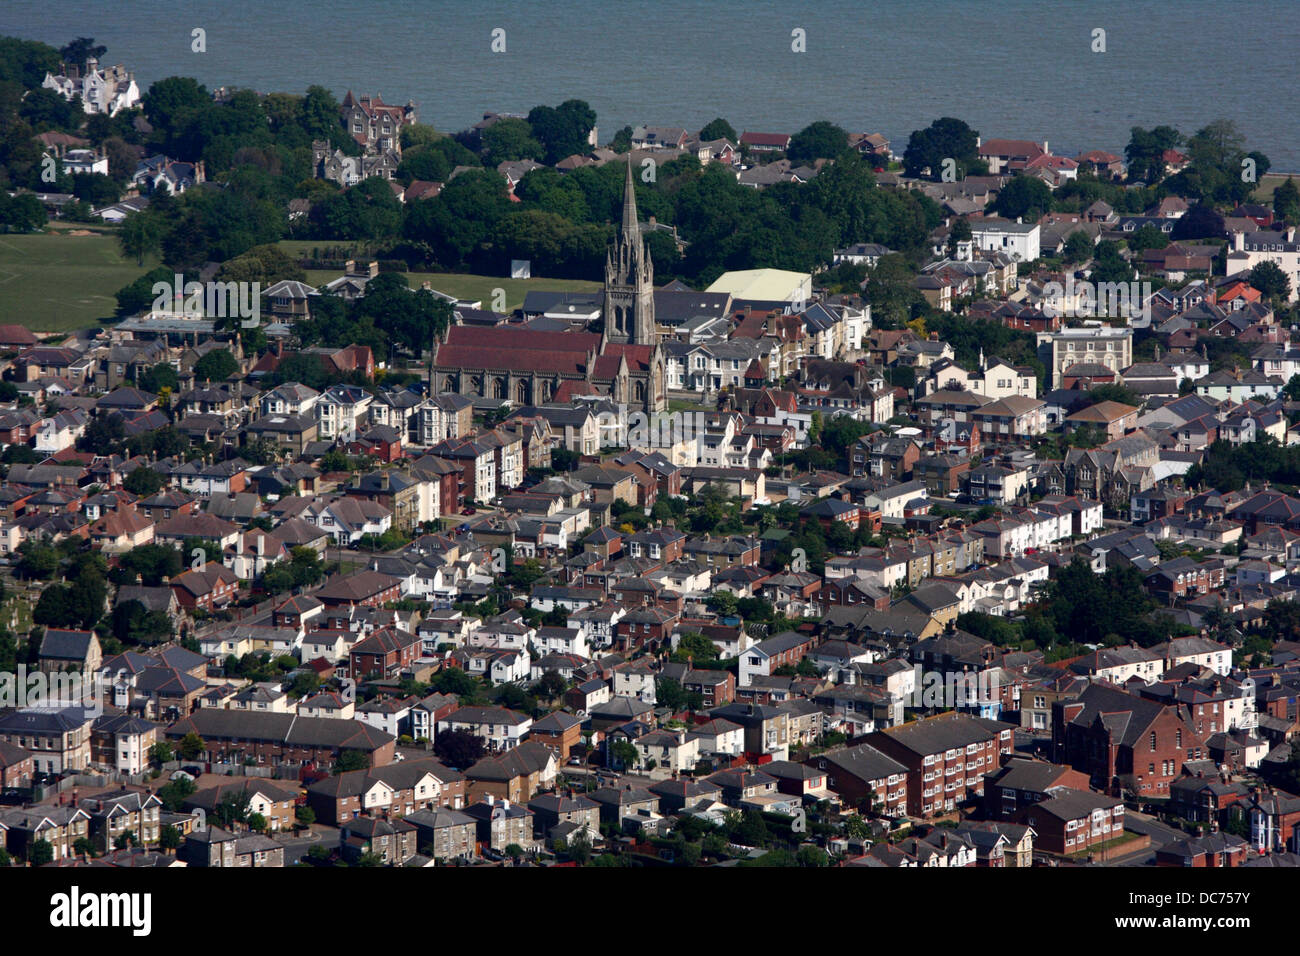 Aerial view of Ryde, Isle of Wight - Stock Image